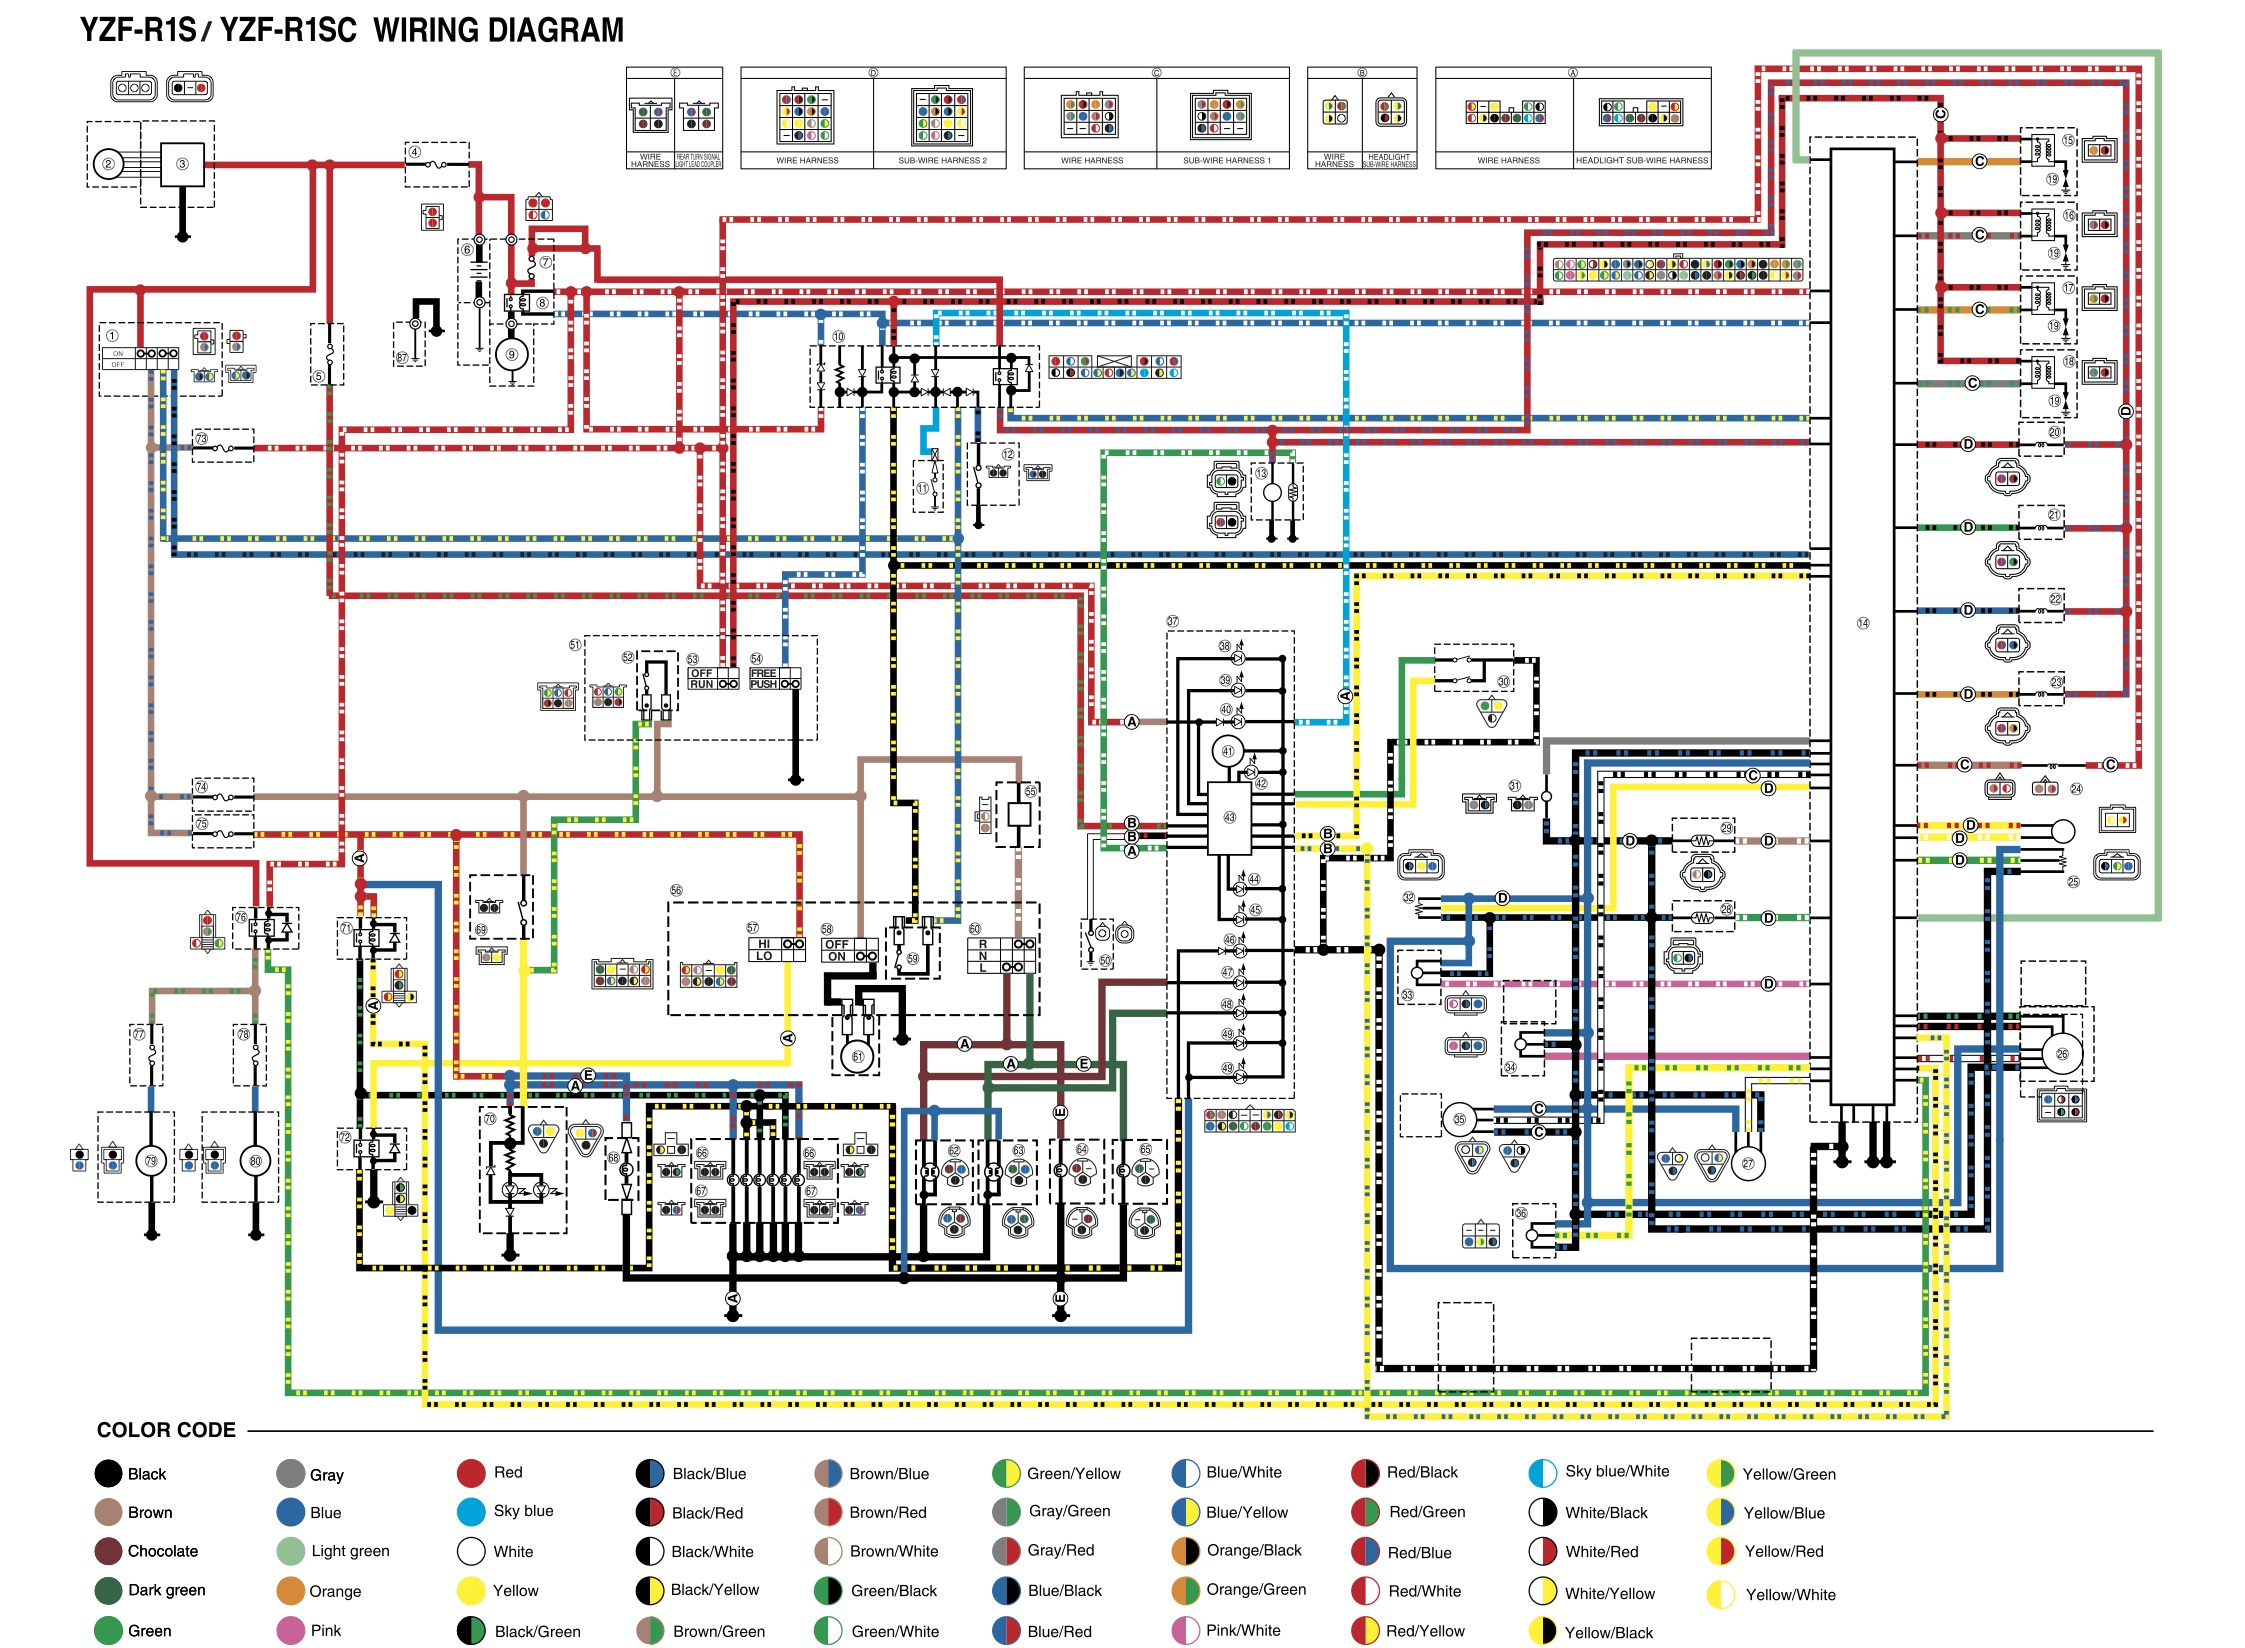 2000 Yamaha R1 Wiring Diagram http://www.minibuggy.net/forum/controls-electrical/11854-r1-wiring-help.html